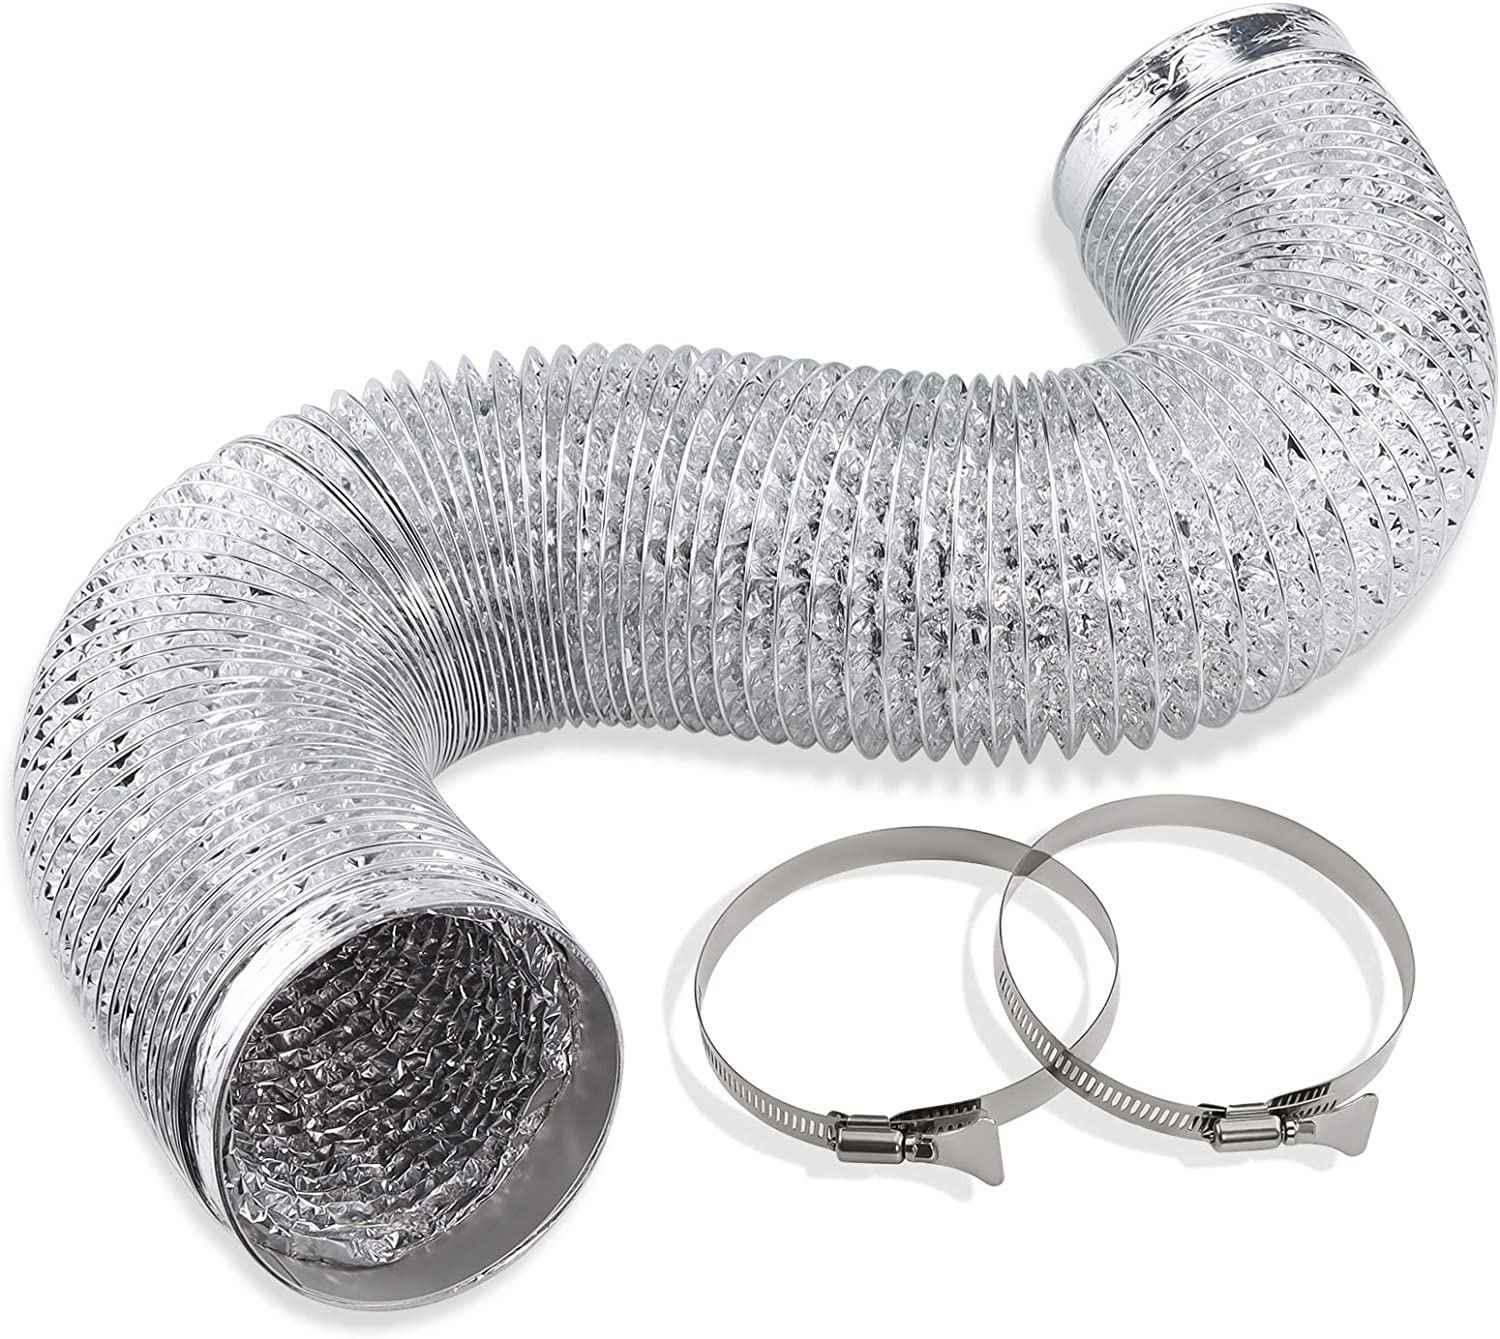 Cenipar Dryer Vent Hose-4 inch Ducting Vent Hose Flexible Aluminum Foil Non-Insulated (4 inch 8 feet) with 2 Clamps